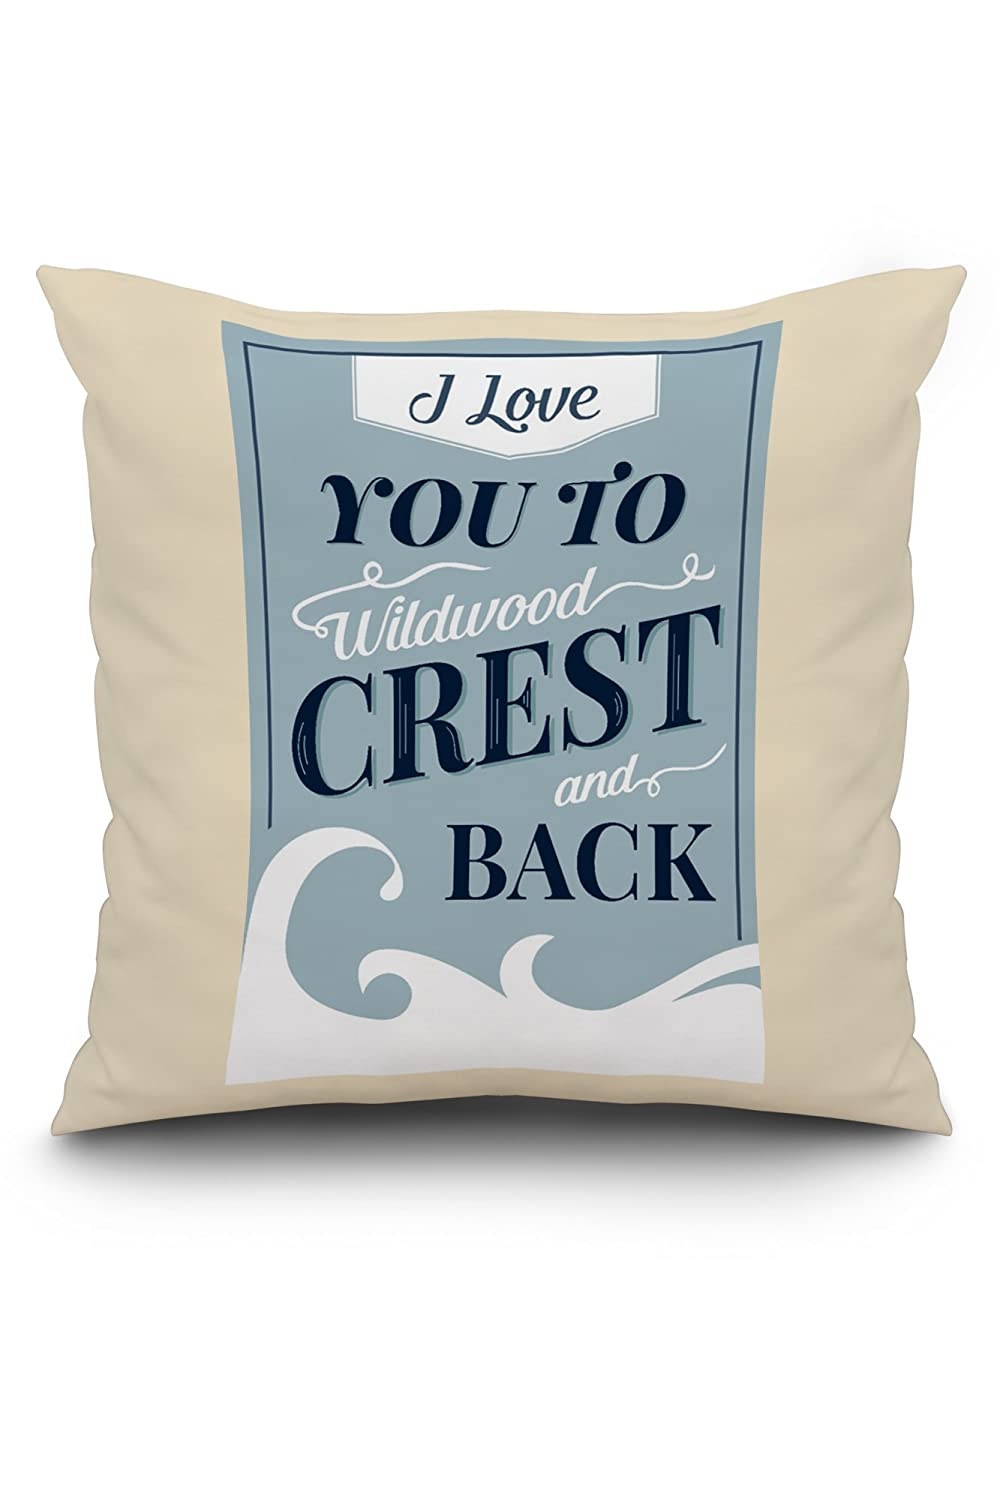 Love You To Wildwood Crest and Back – ビーチSentiment – ライトブルー 20 x 20 Pillow (Natural Border) LANT-3P-PW-NL-77869-20x20 B01N0JWX9G  20 x 20 Pillow (Natural Border)